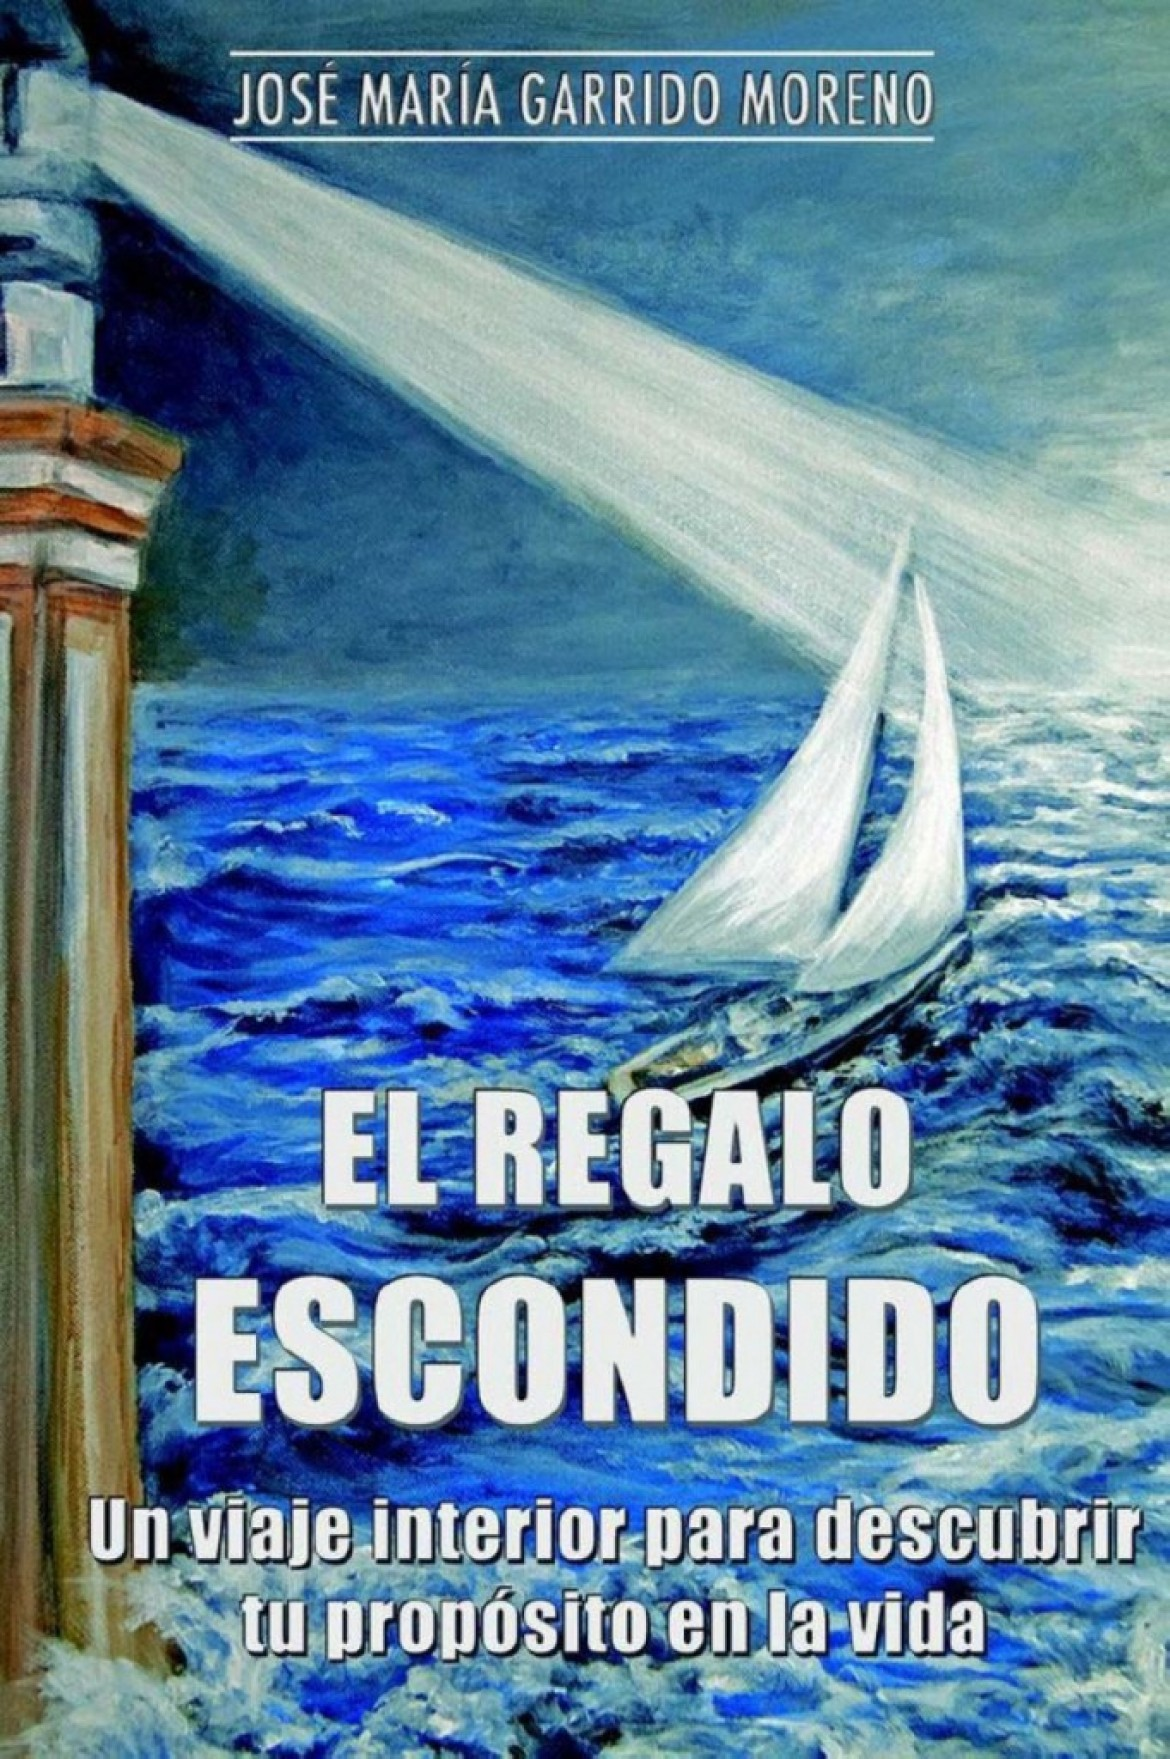 El Regalo Escondido